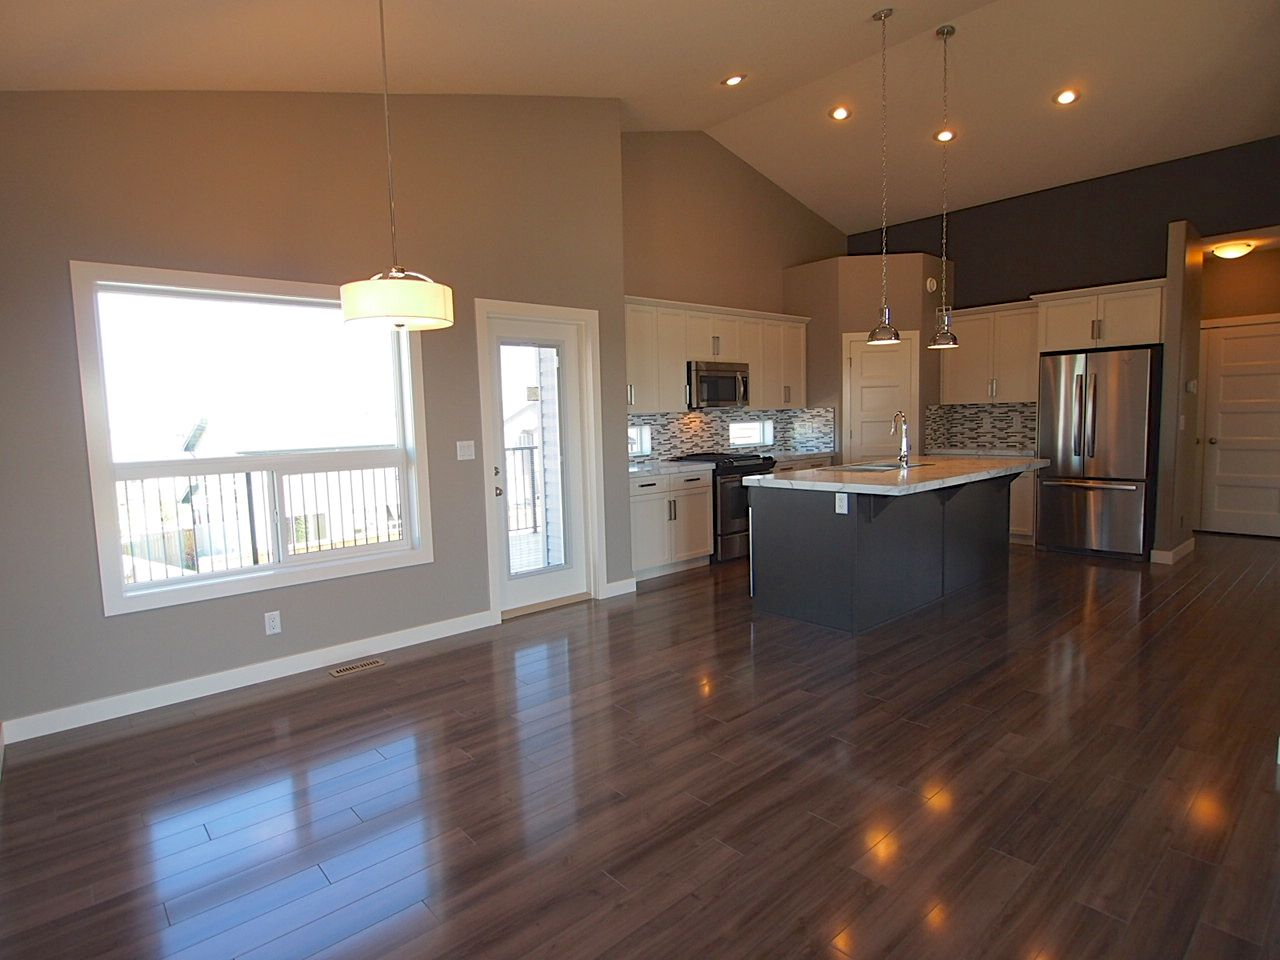 White Kitchen Laminate Flooring Laminate Flooring Two Toned Kitchen With Artic White Cabinets And